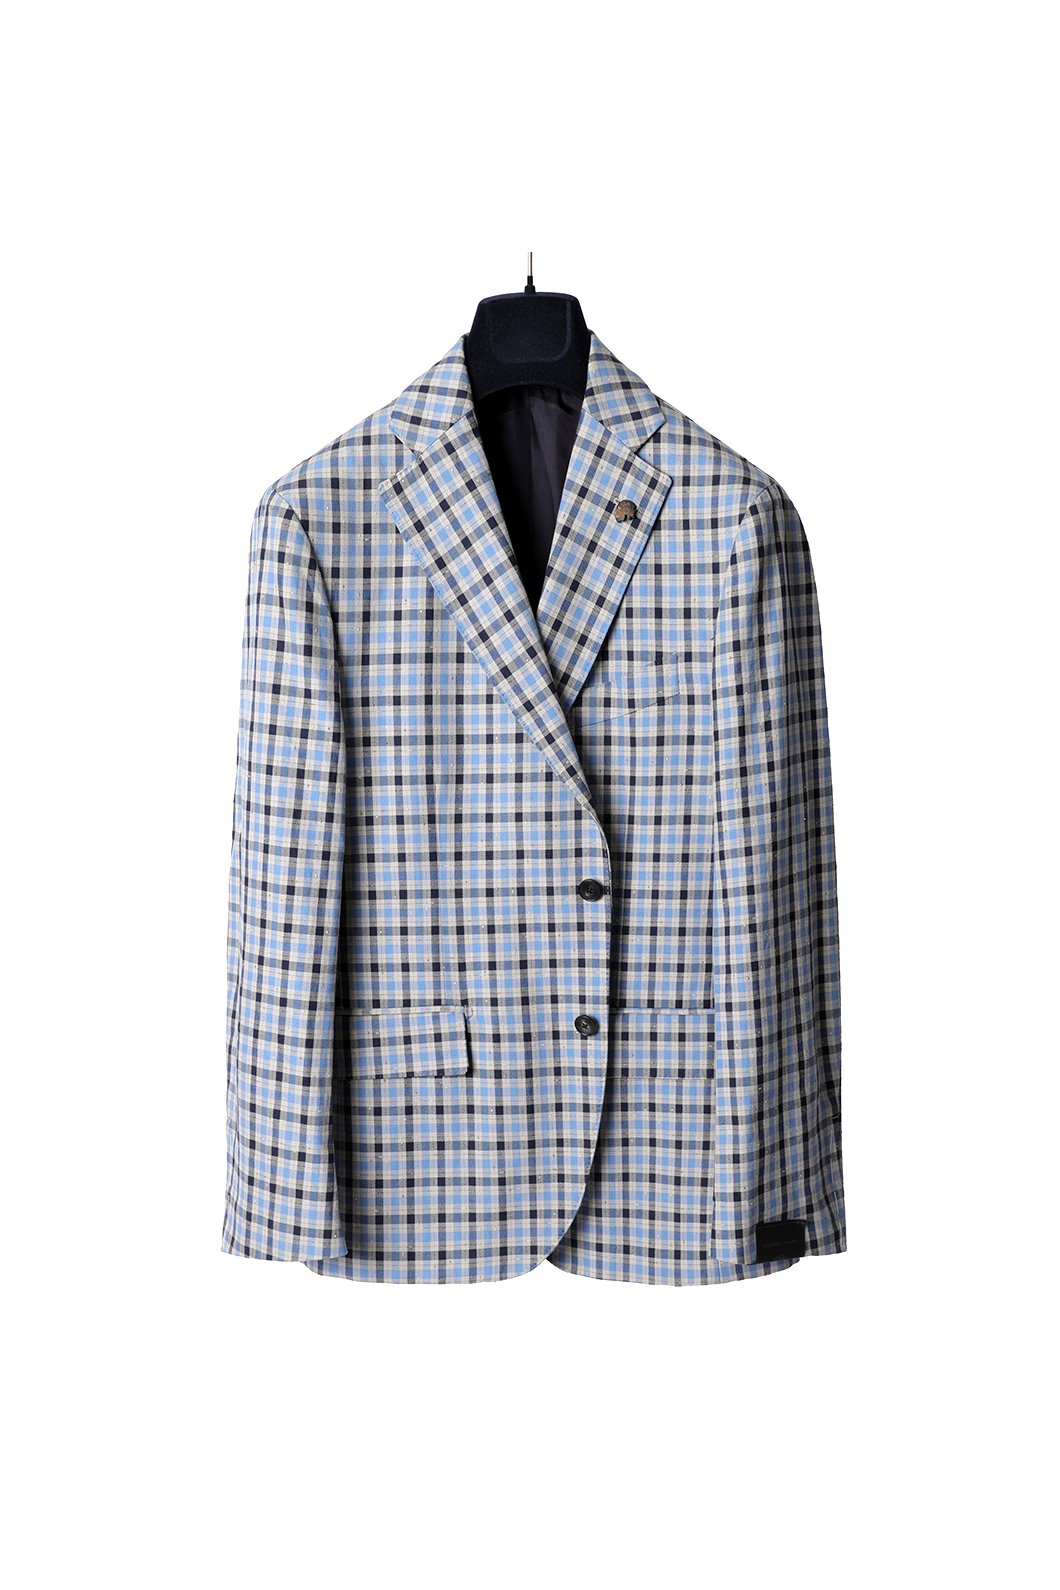 PASINI Zior Filo Check Single Jacket-Blue